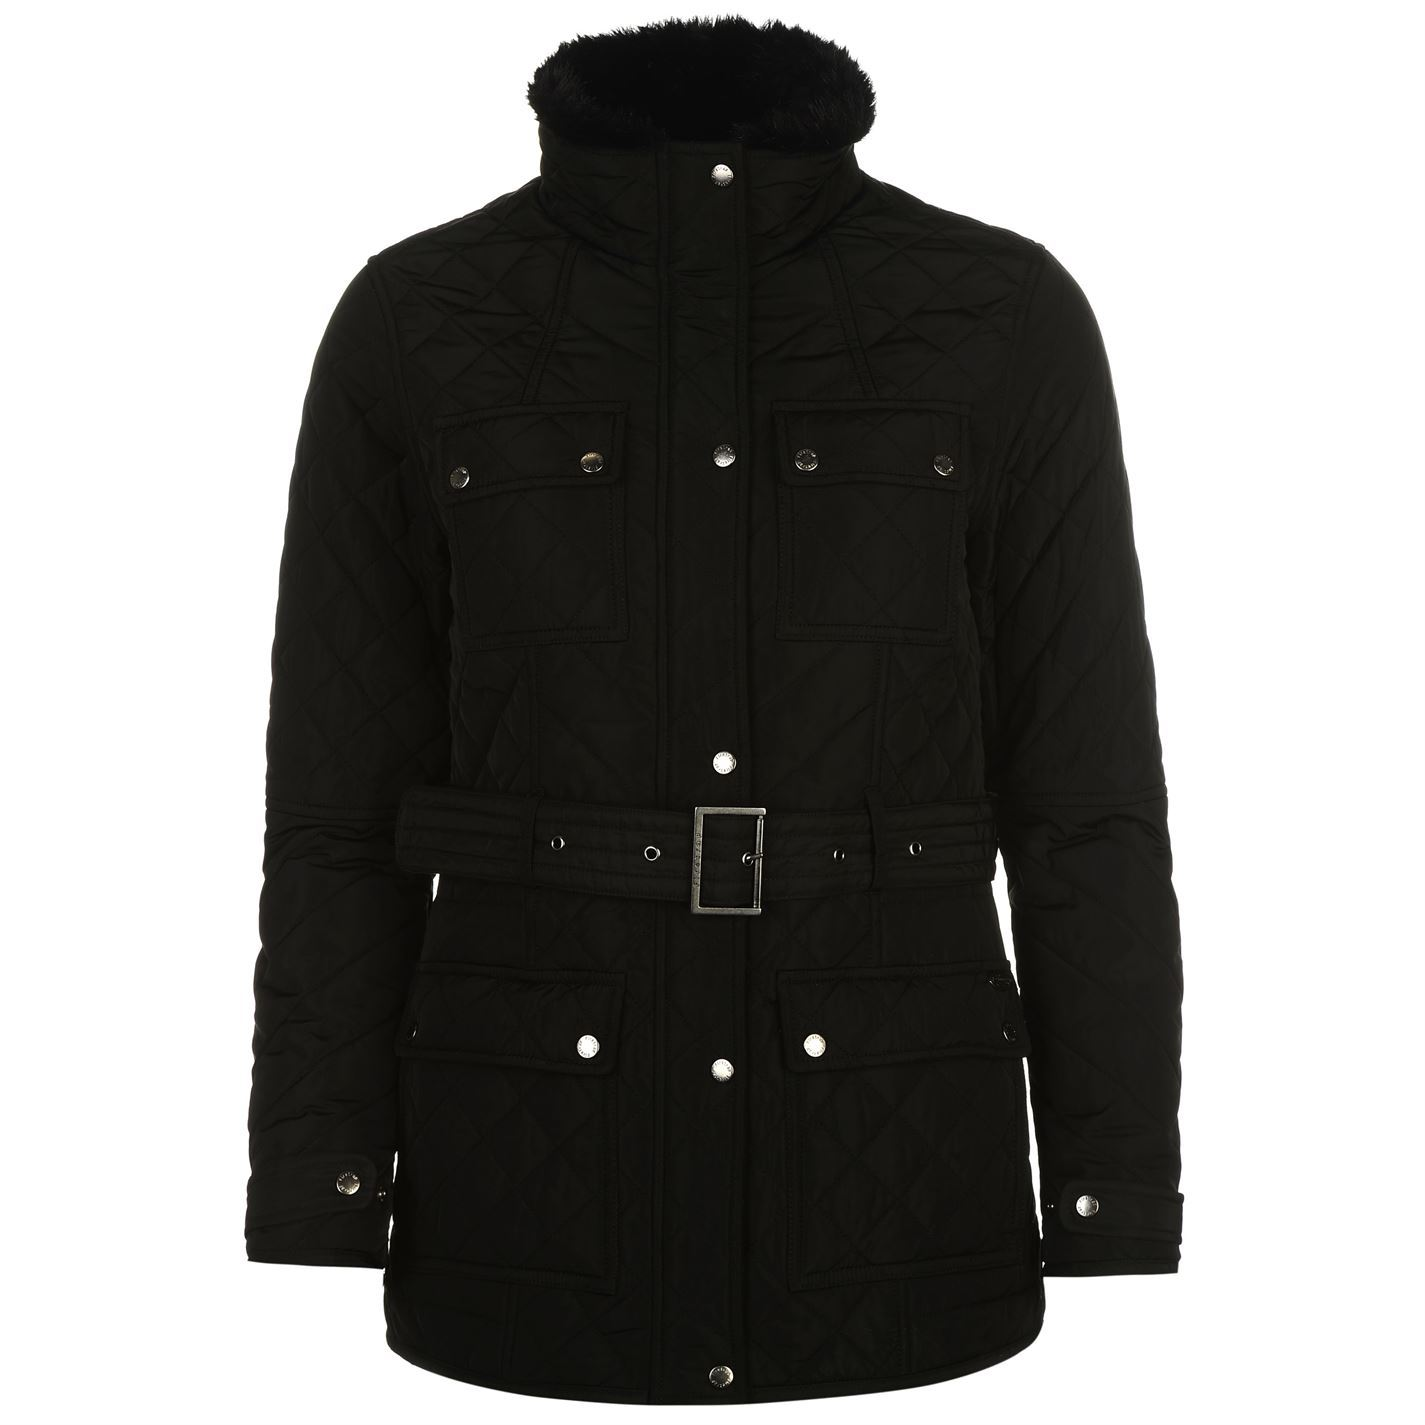 Firetrap-Womens-Blackseal-Kingdom-Jacket-Quilted-Coat-Top-High-Neck-Zip-Chest